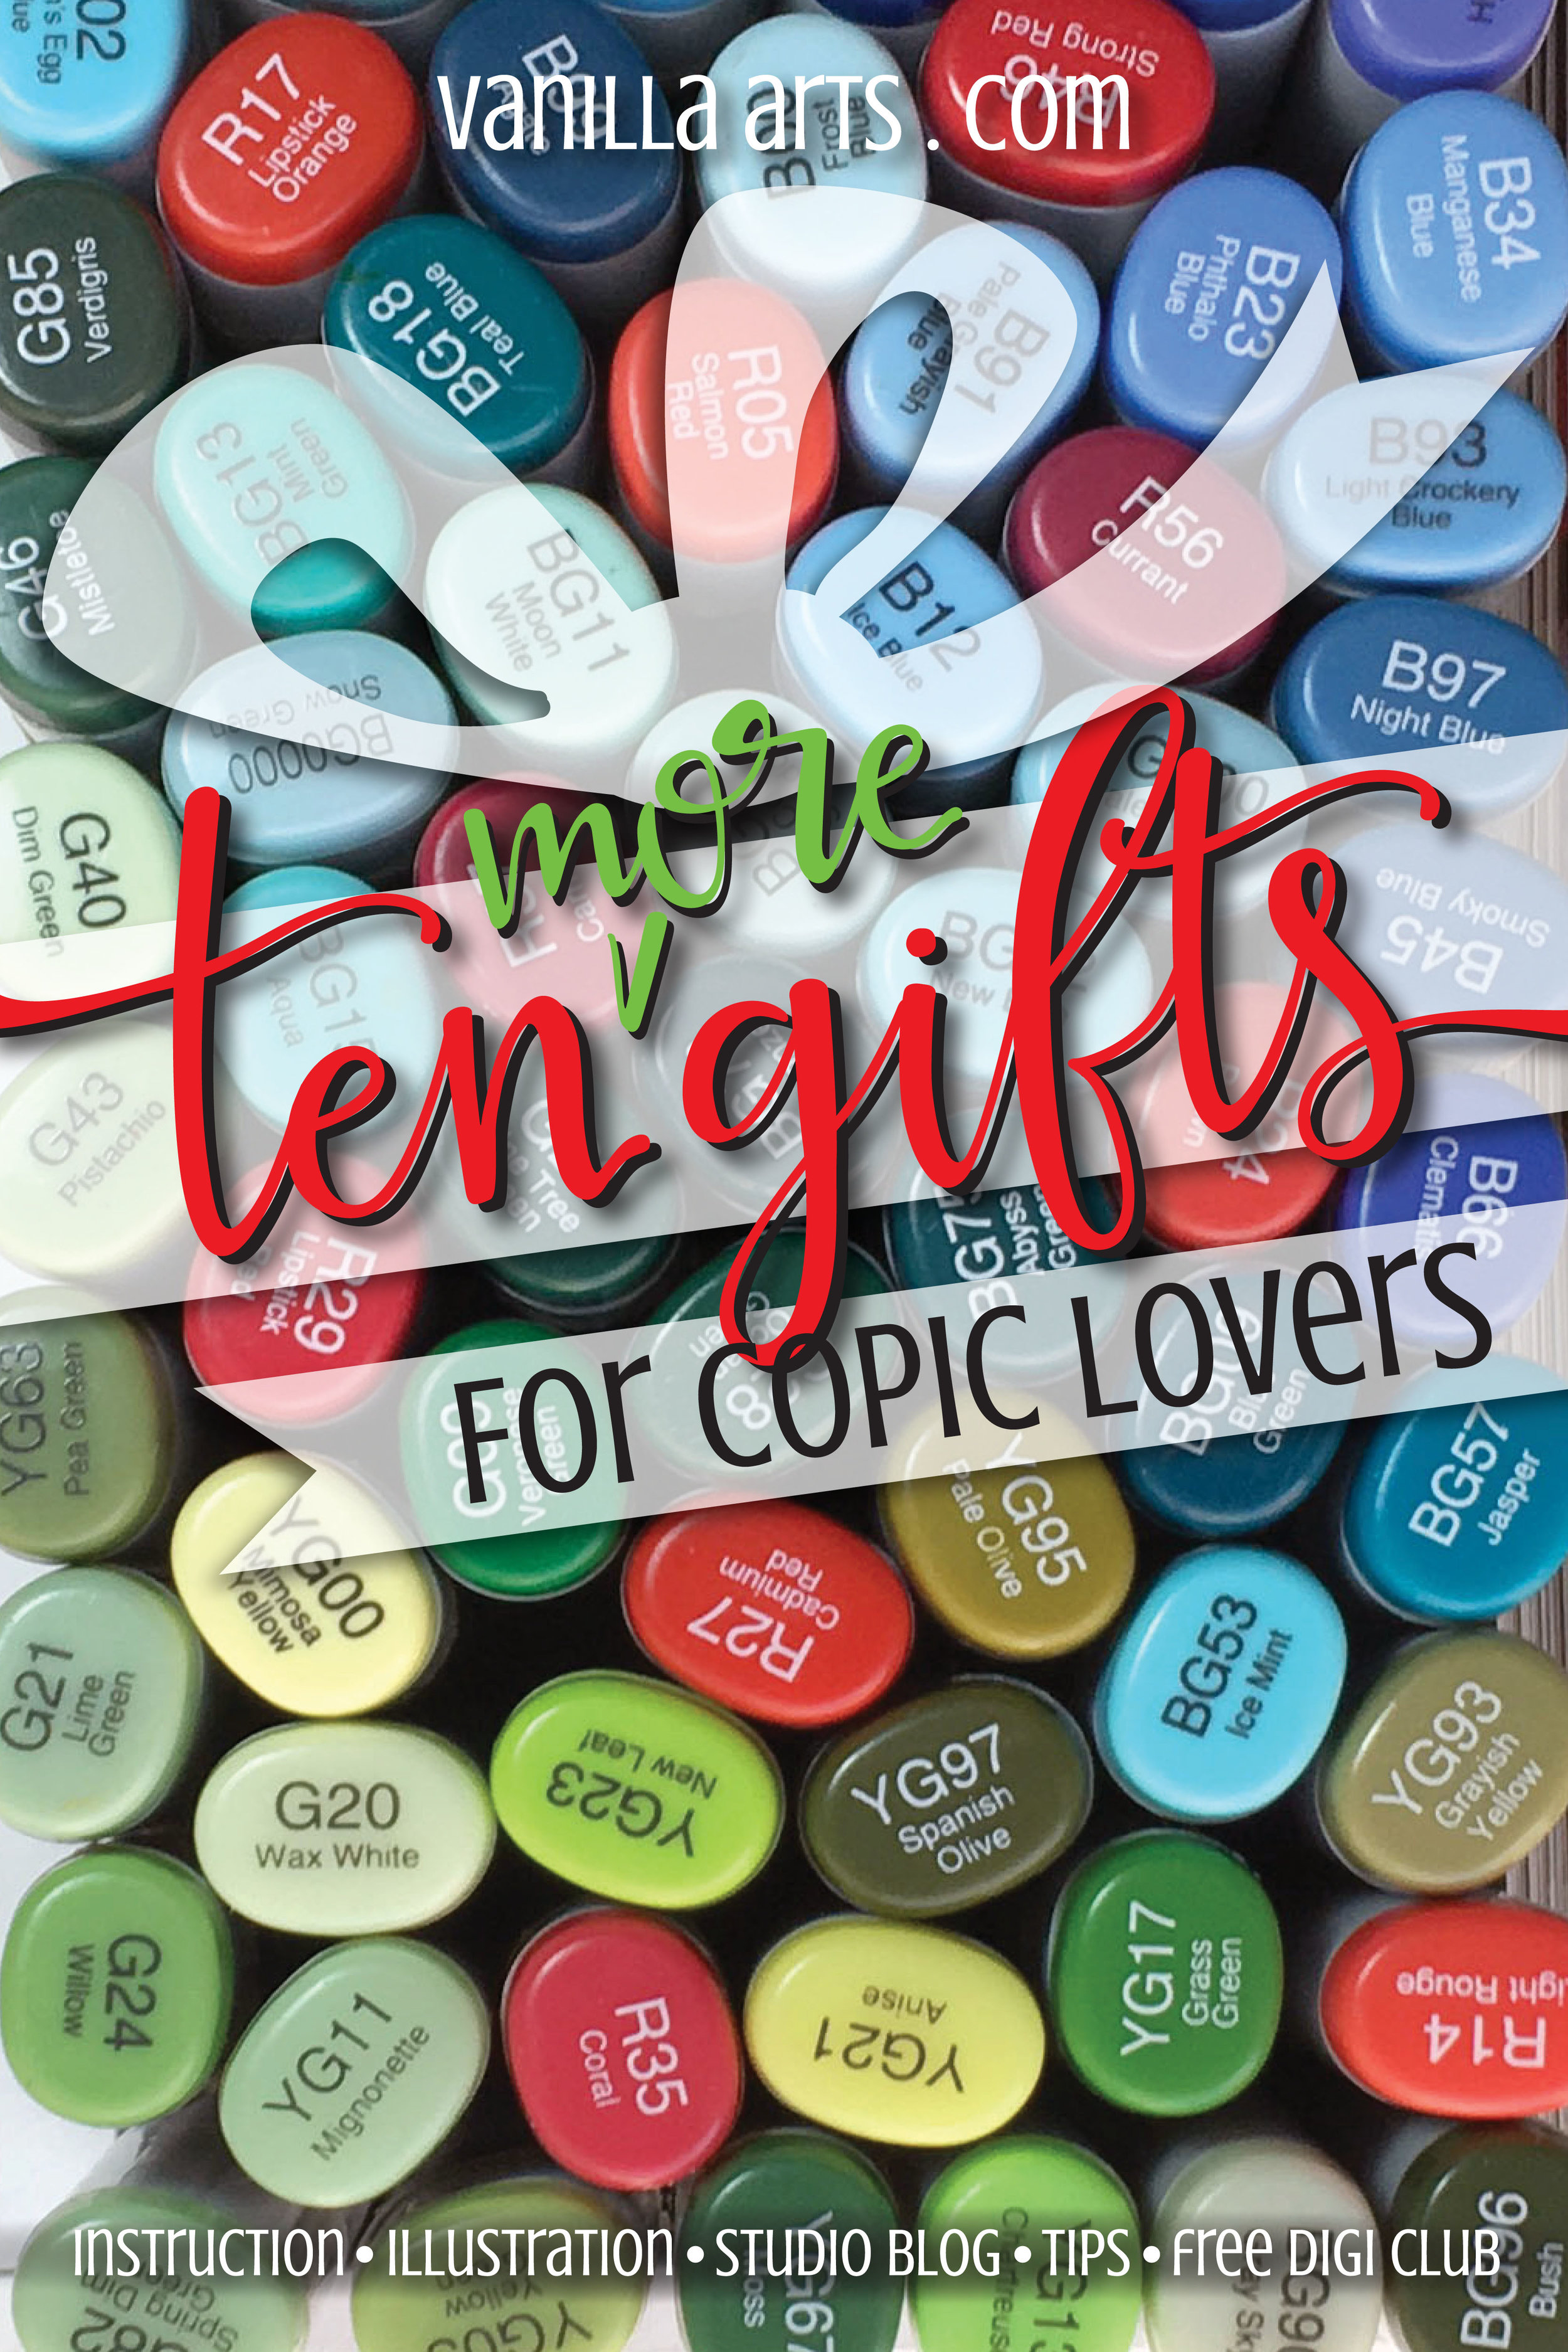 10 MORE Gift ideas for a Copic Marker lover- gifts they'll actually use! | VanillaArts.com